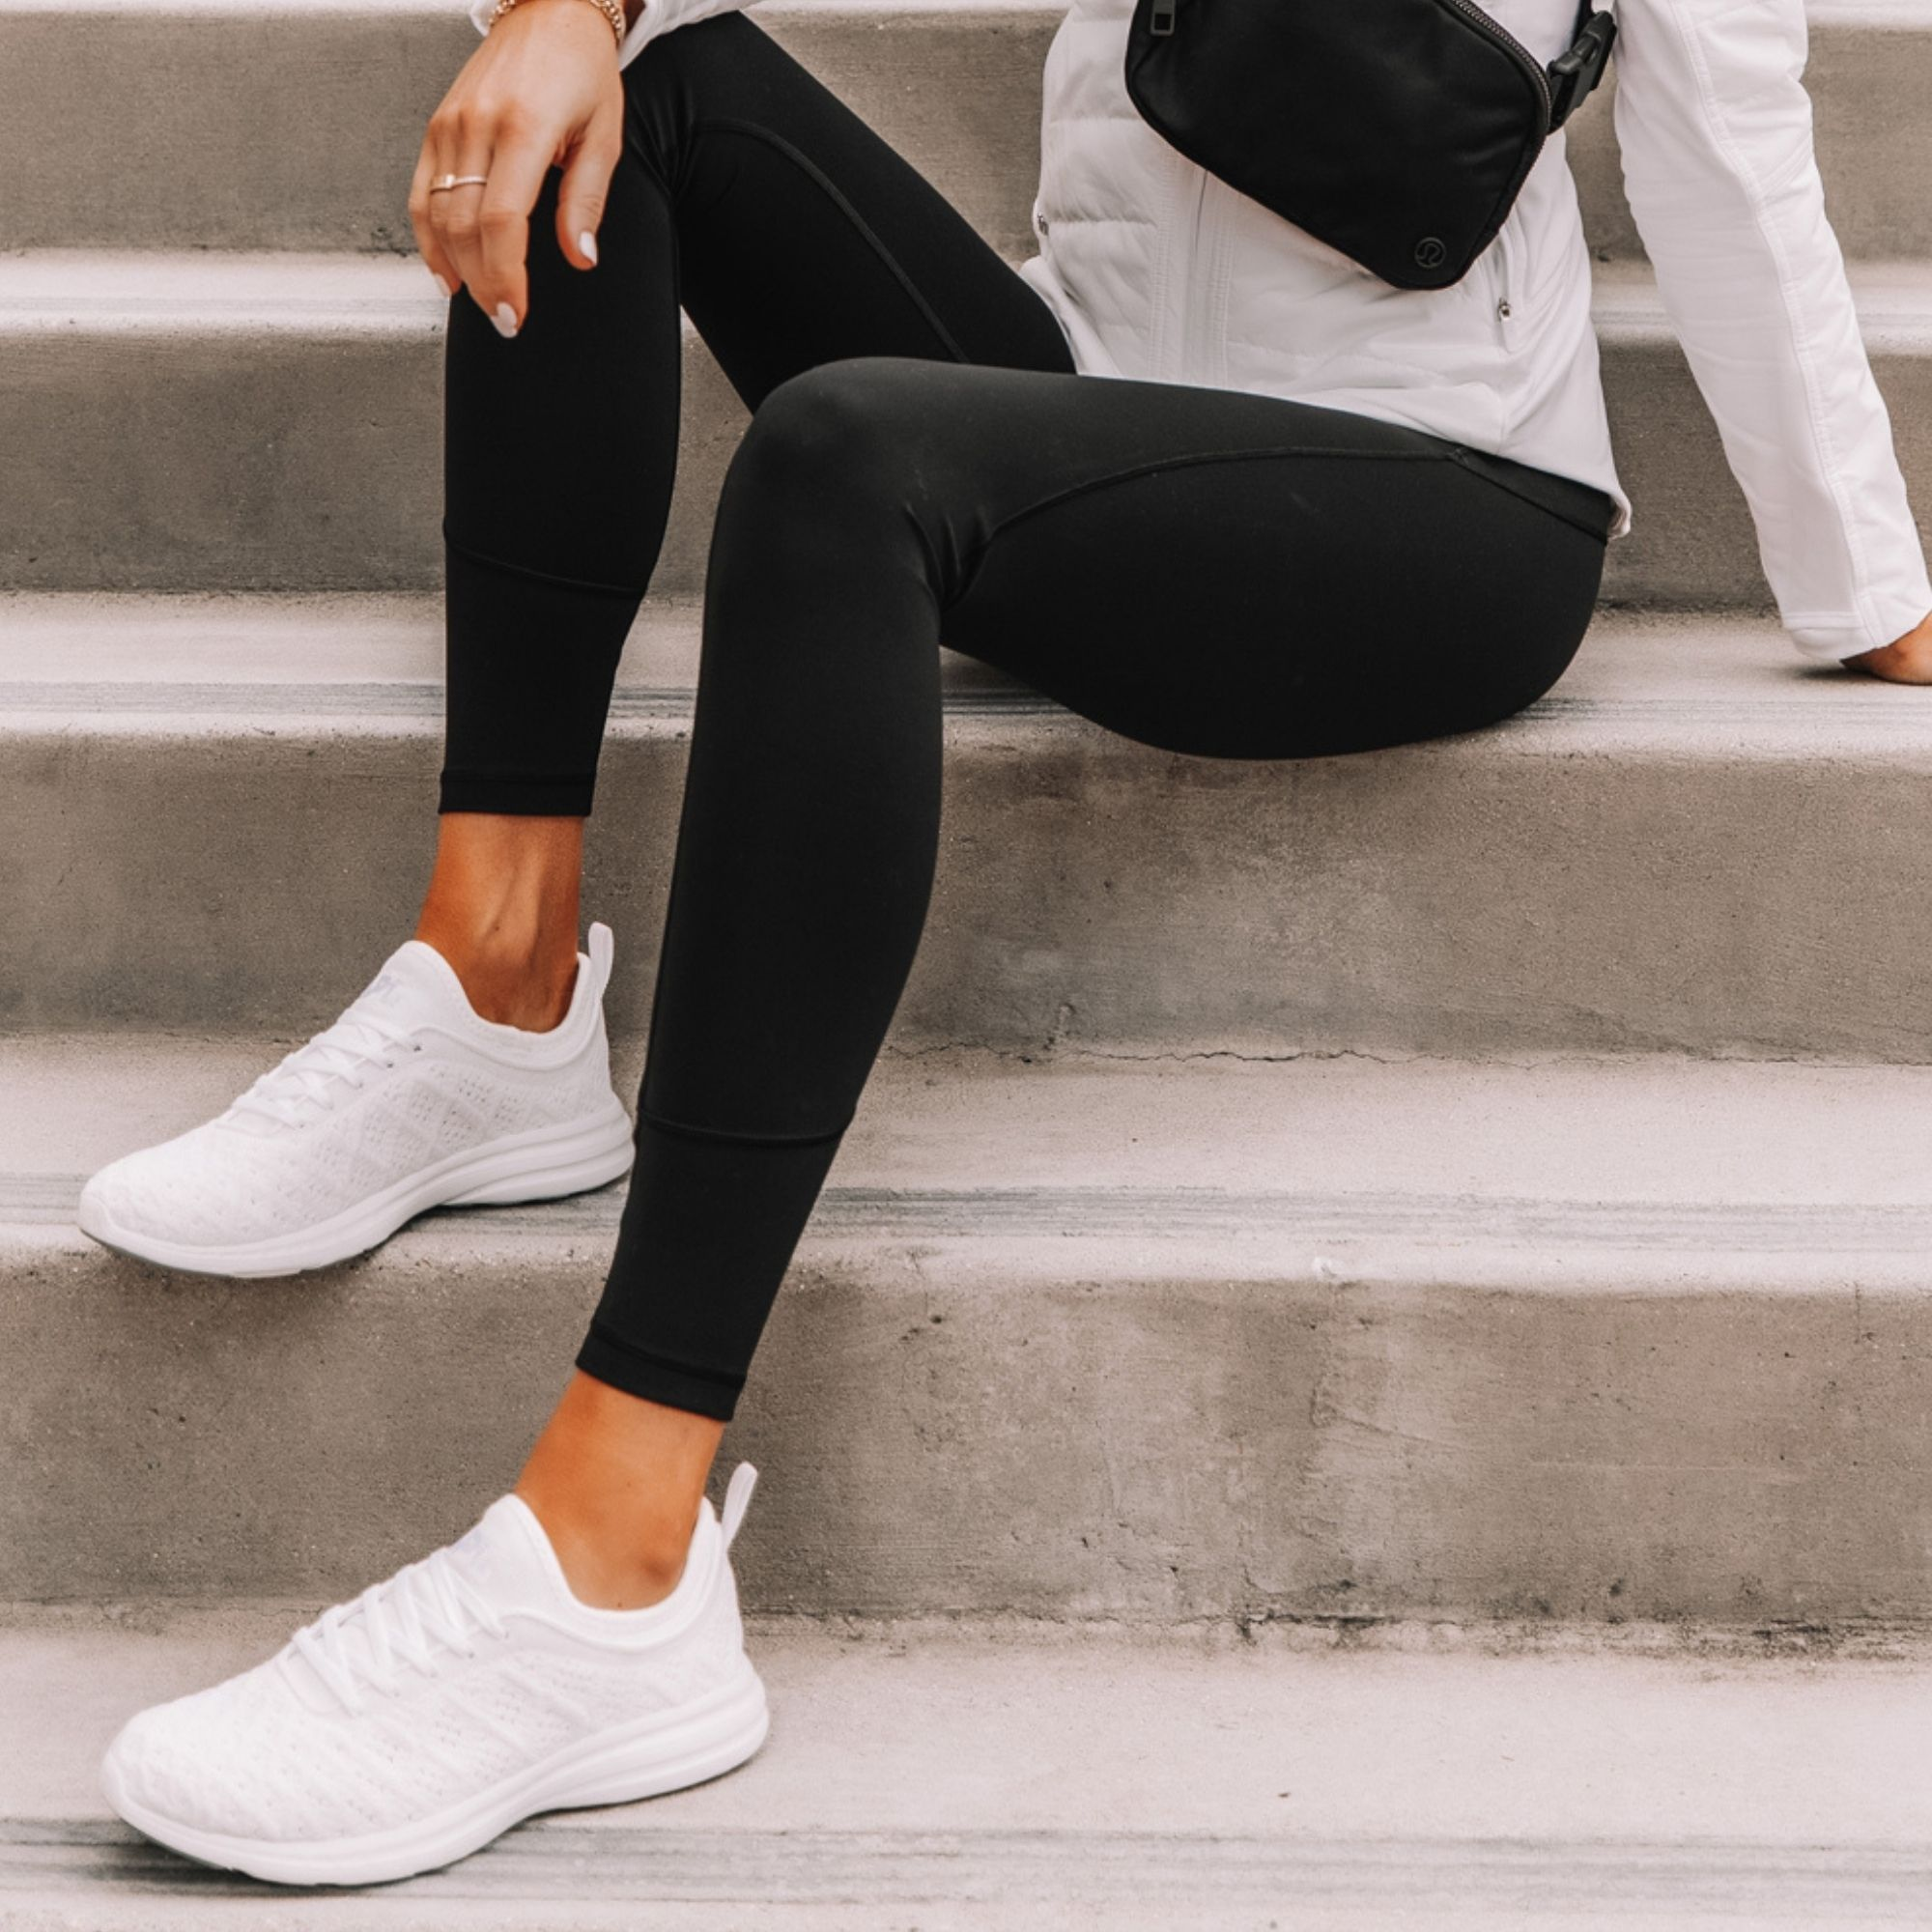 White sneakers with black leggings on woman